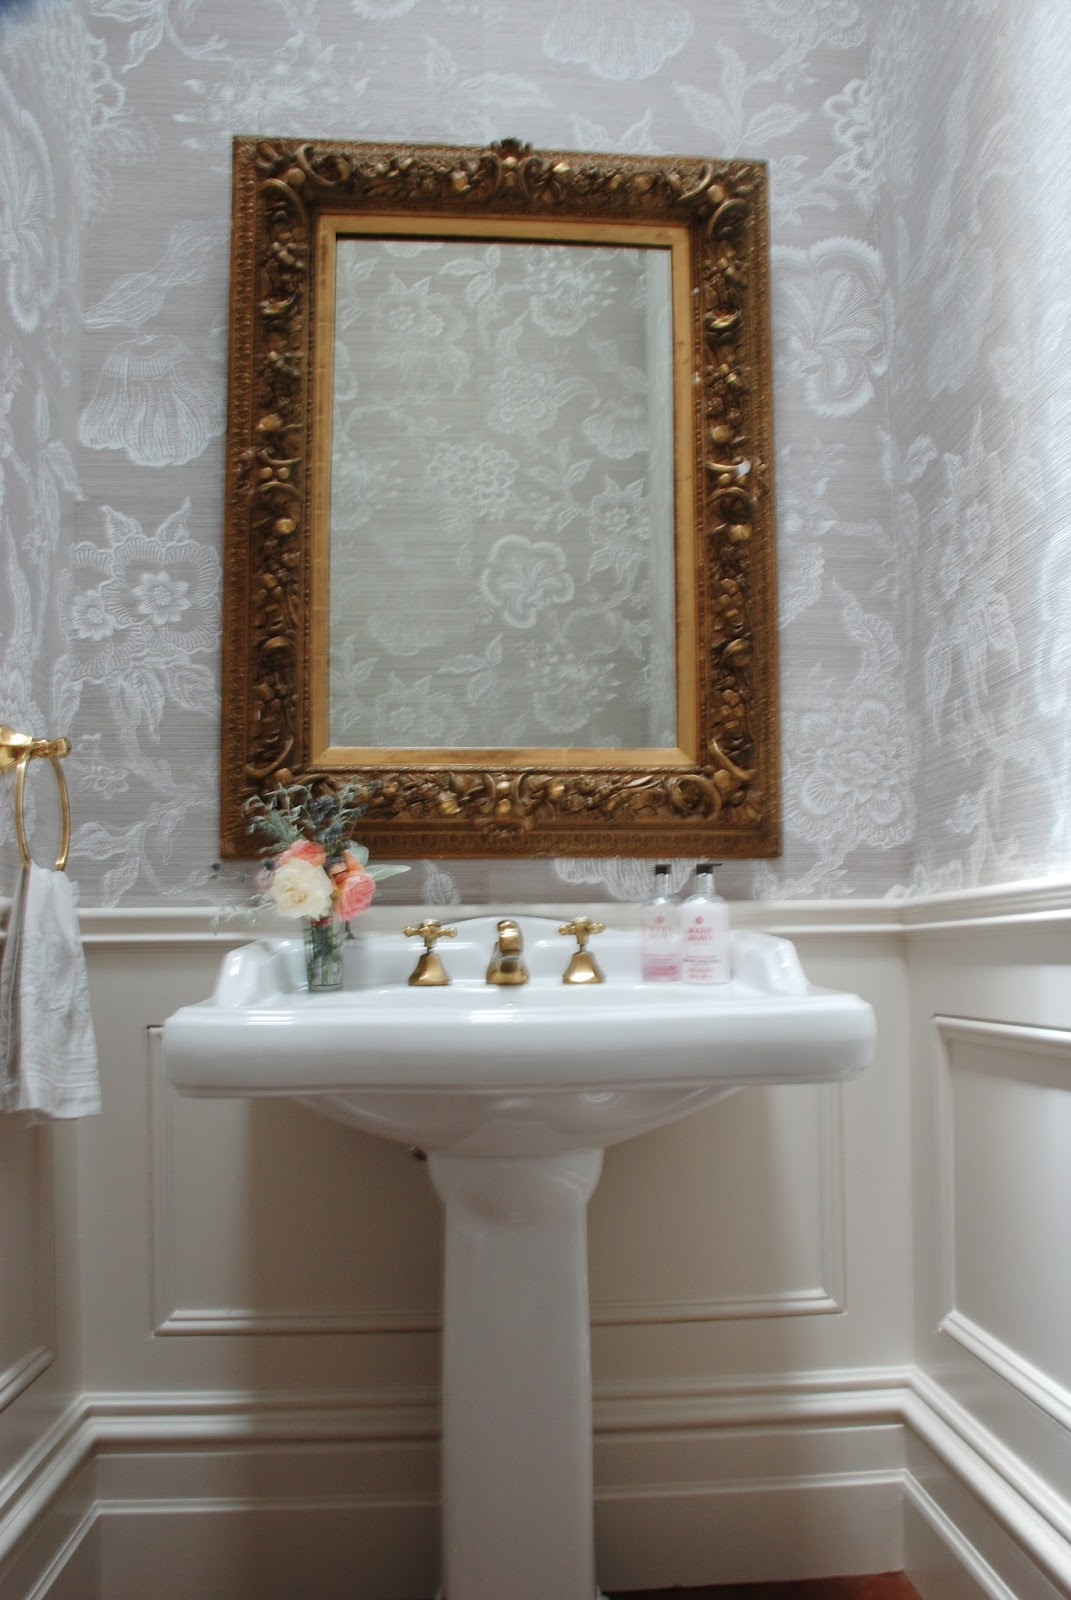 Adelaide Villa: Renovation - The completed powder room/ WC